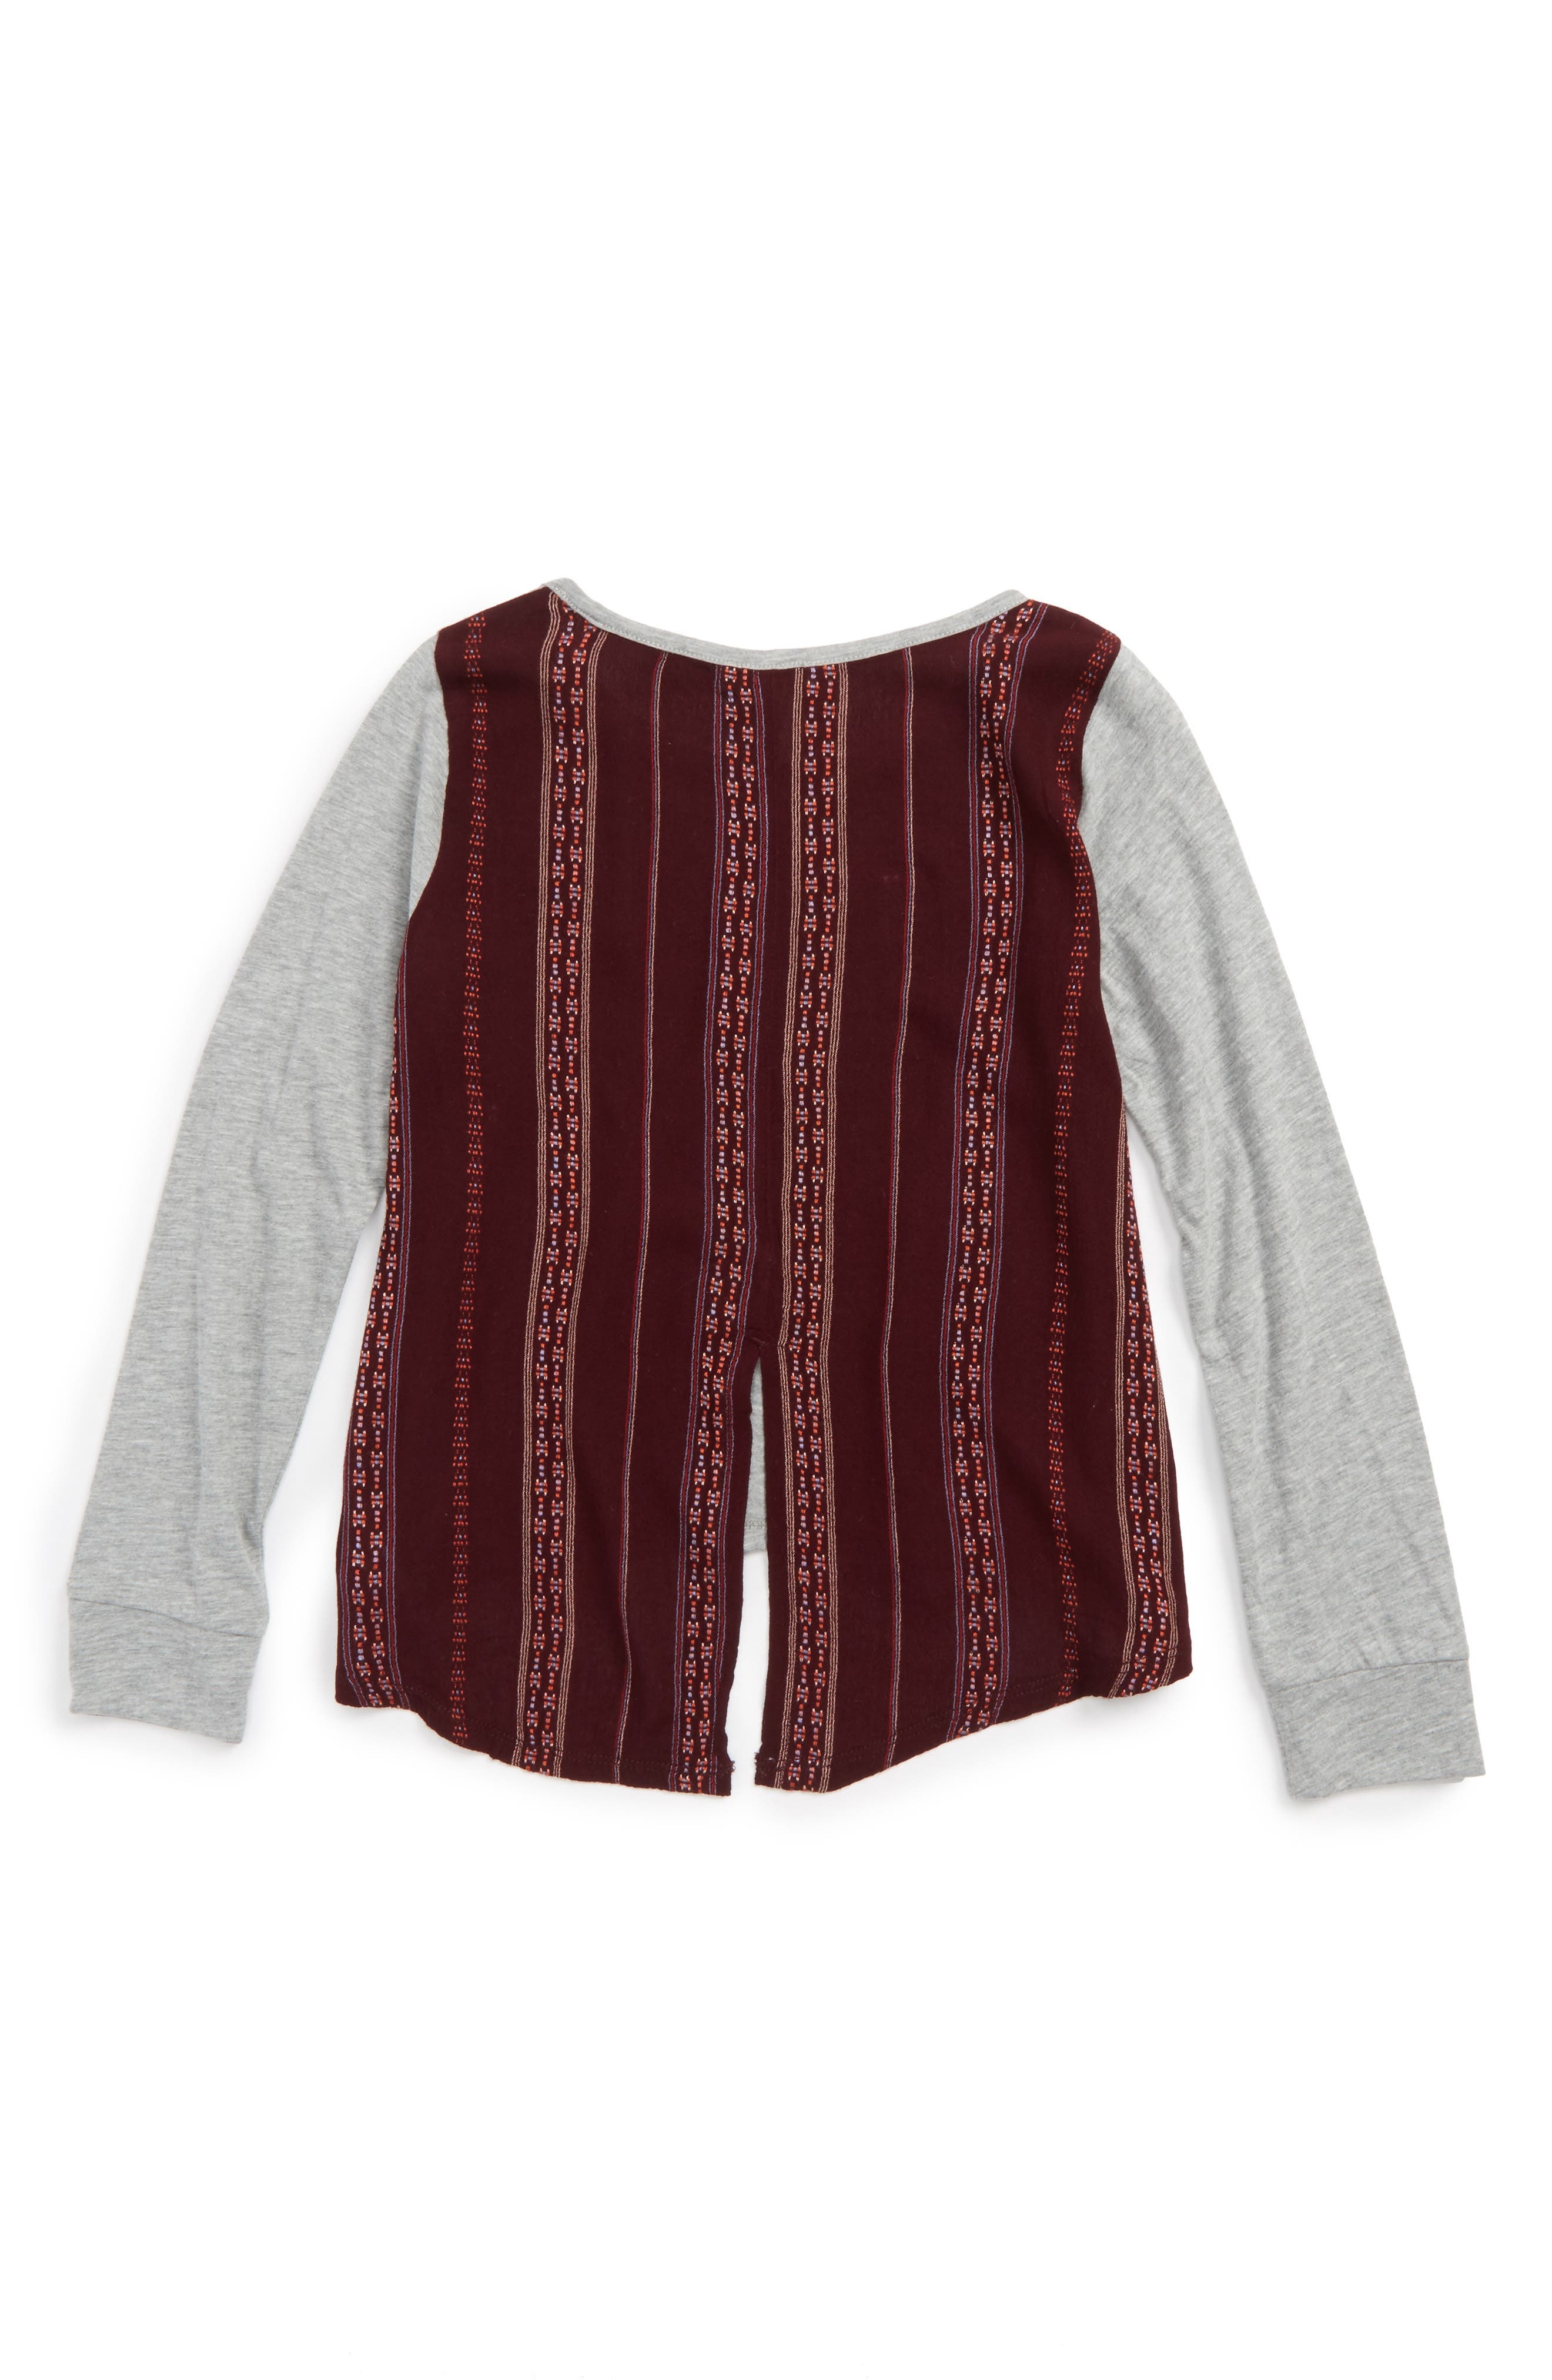 Embroidered Back Shirt,                             Alternate thumbnail 2, color,                             030